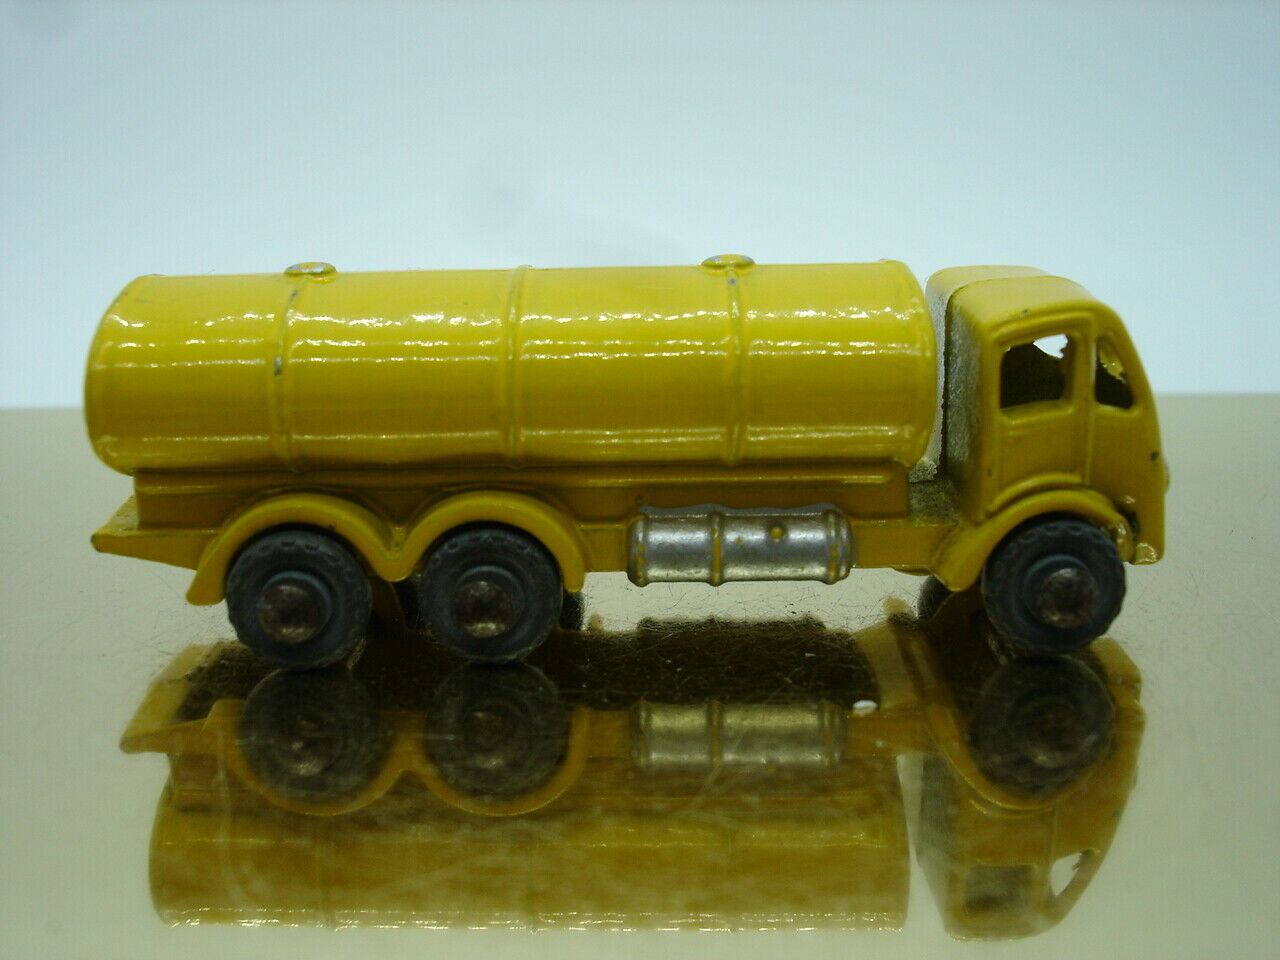 Matchbox 1-75 Moko Lesney No. 11 a Petrol Tanker 1955 53mm Yellow metallr